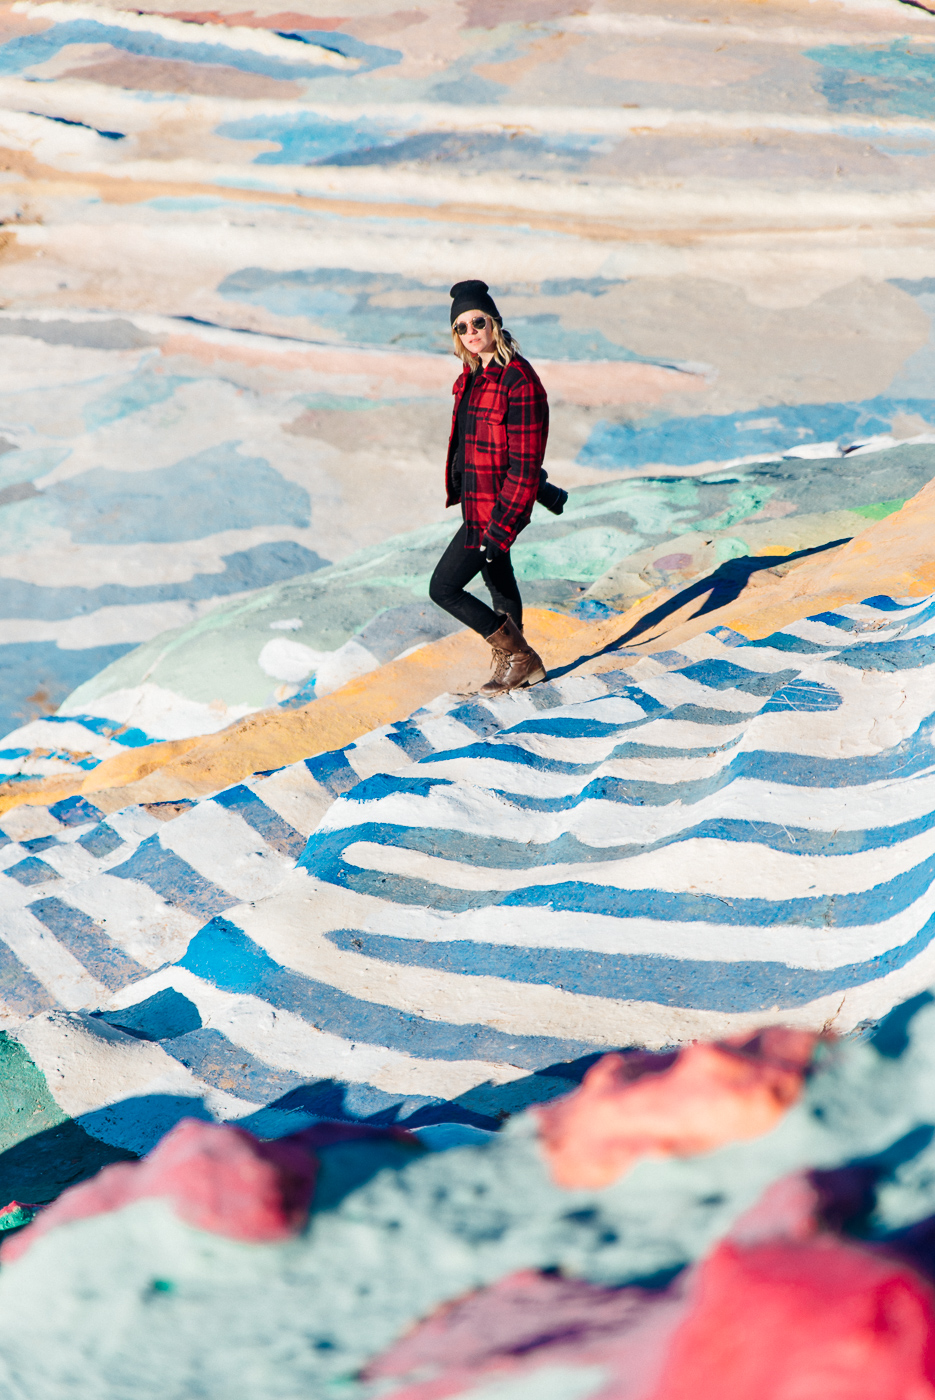 salvation mountain california arizona slab city salton sea vsco nikon america yall pawlowski americayall plaid